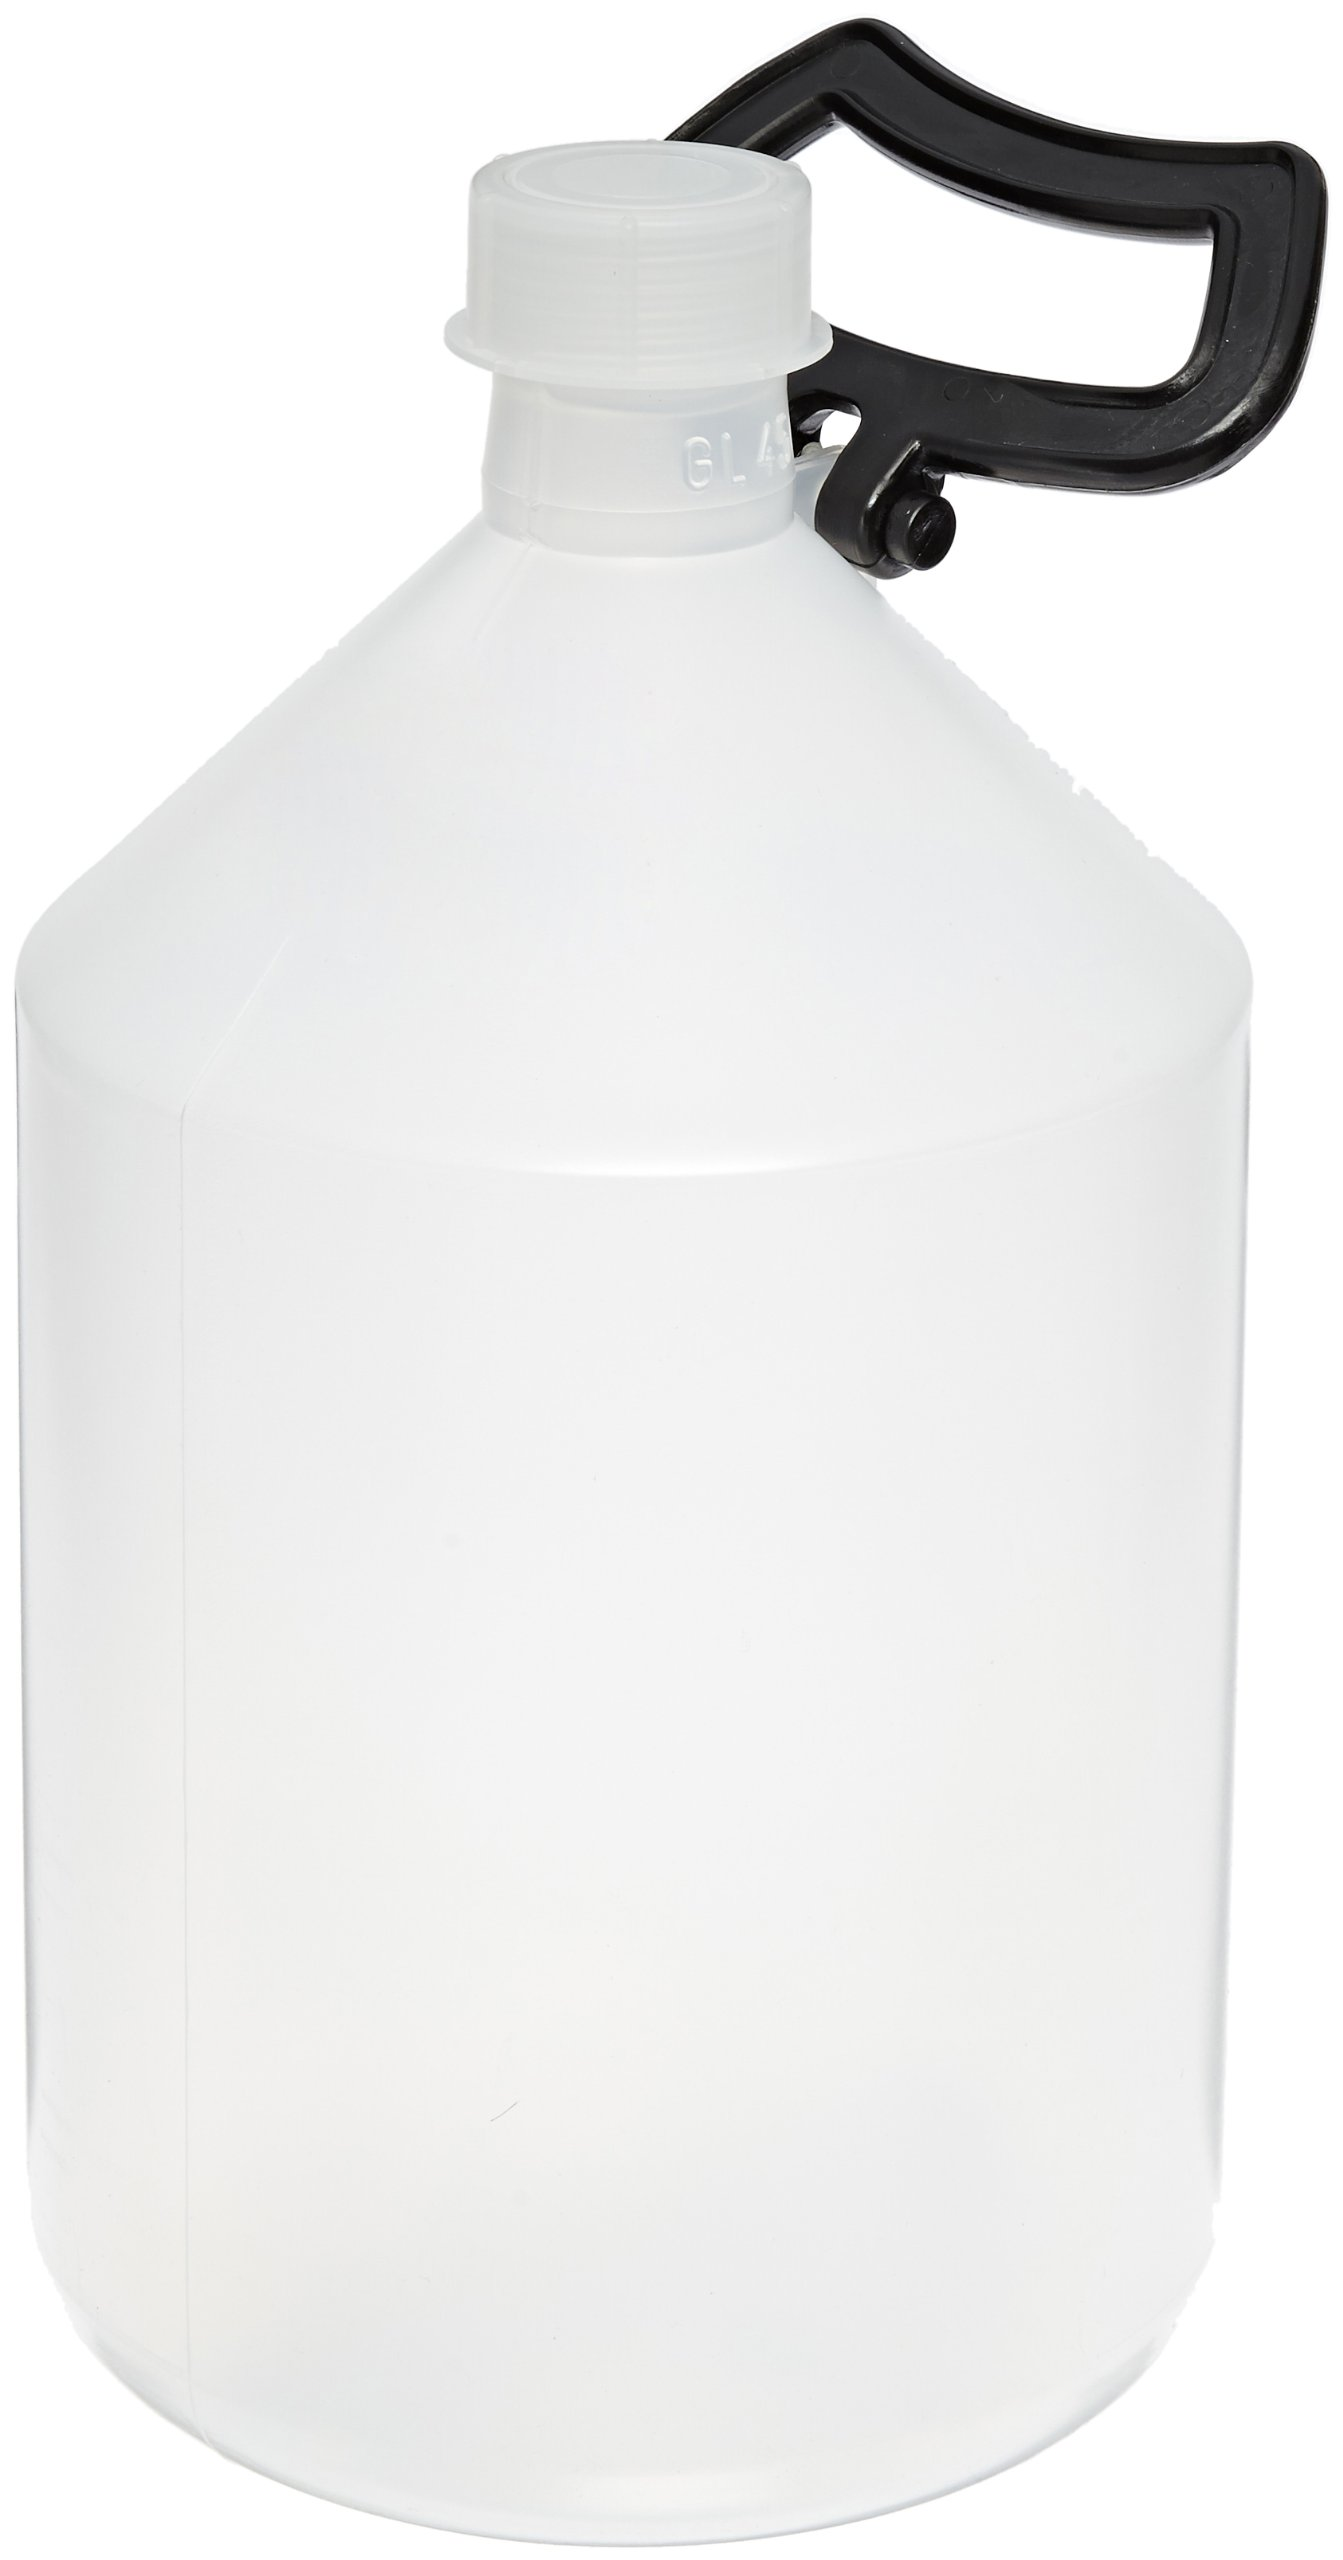 Vitlab Polypropylene Narrow Mouth Reagent Bottle With Polypropylene Screw Caps, Thread Finish GL45, 5L Capacity